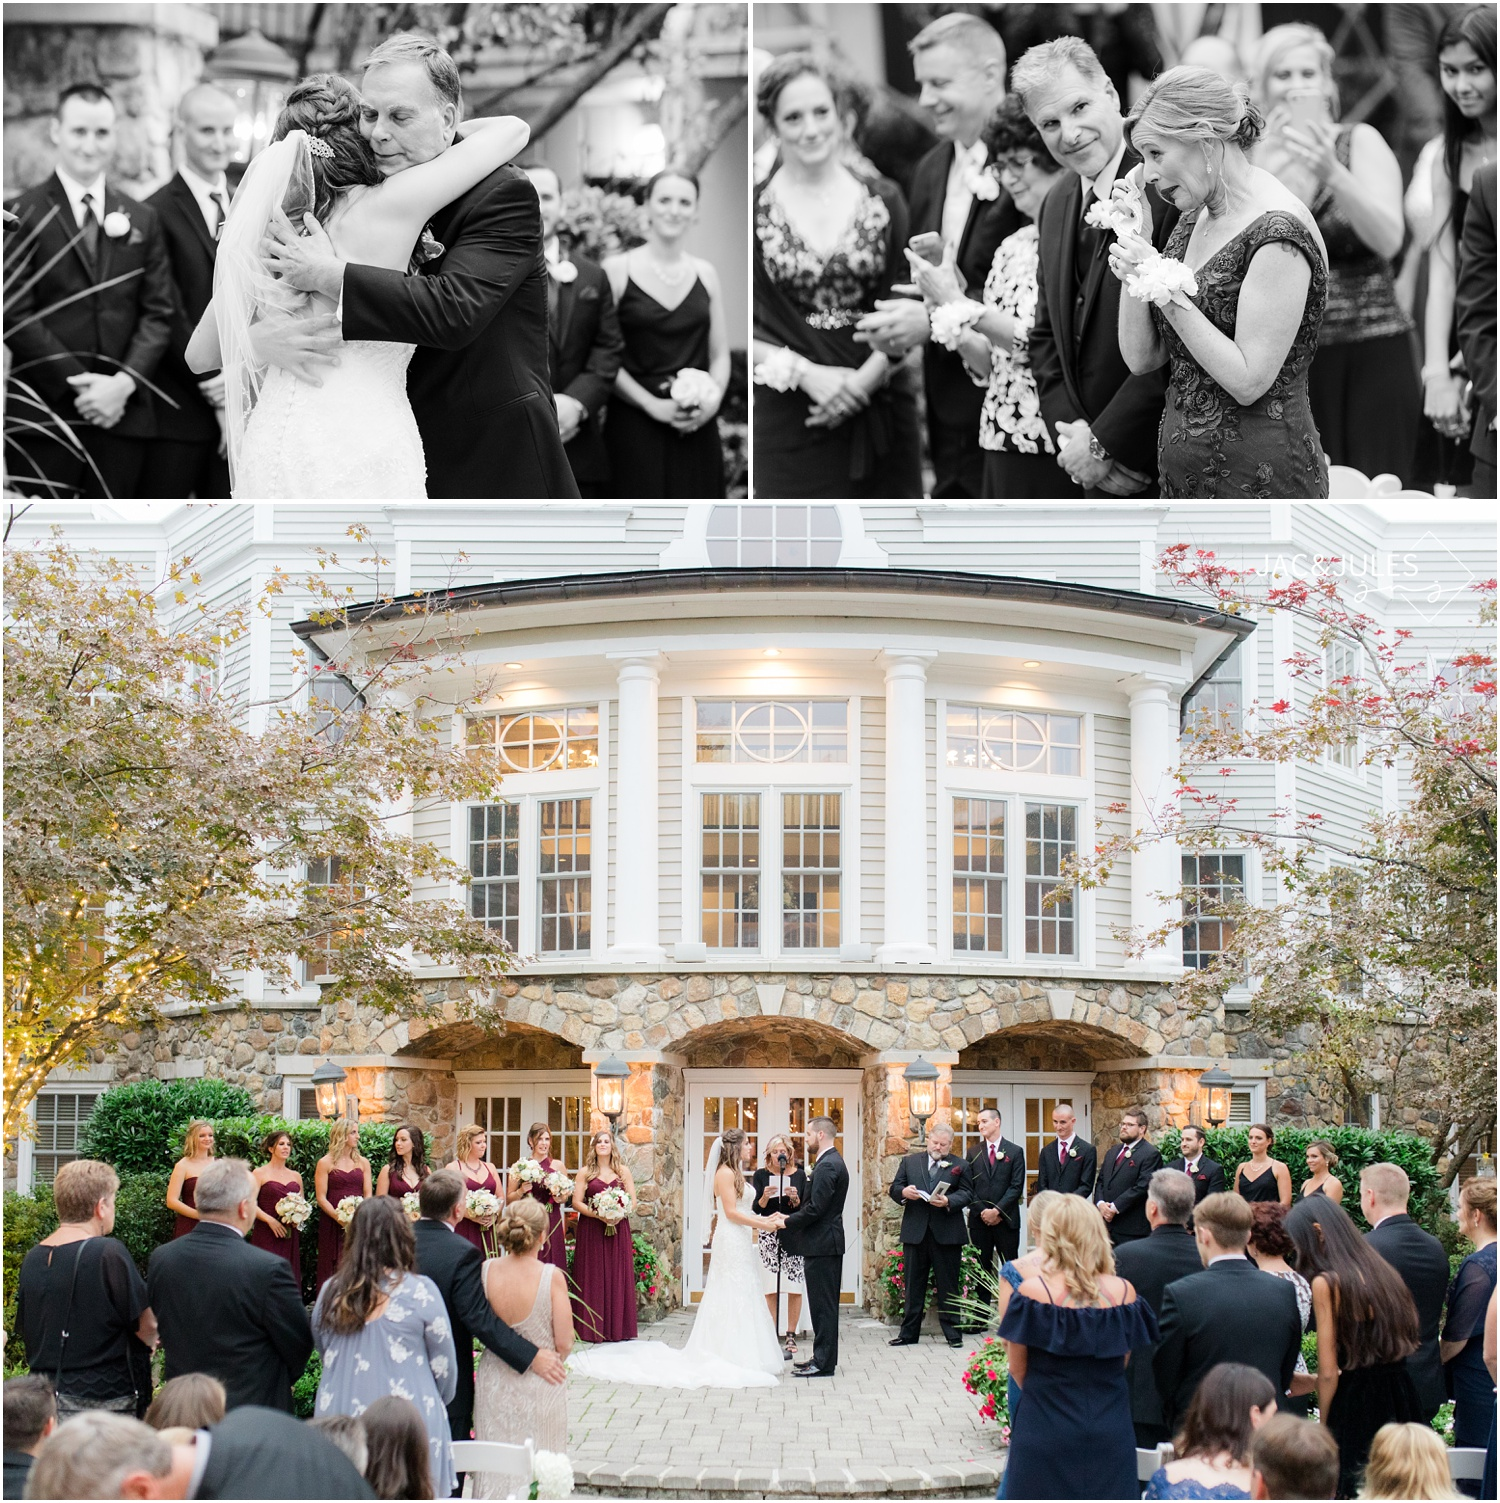 emotional reactions during a wedding ceremony at The Olde Mill Inn in Basking Ridge, NJ.